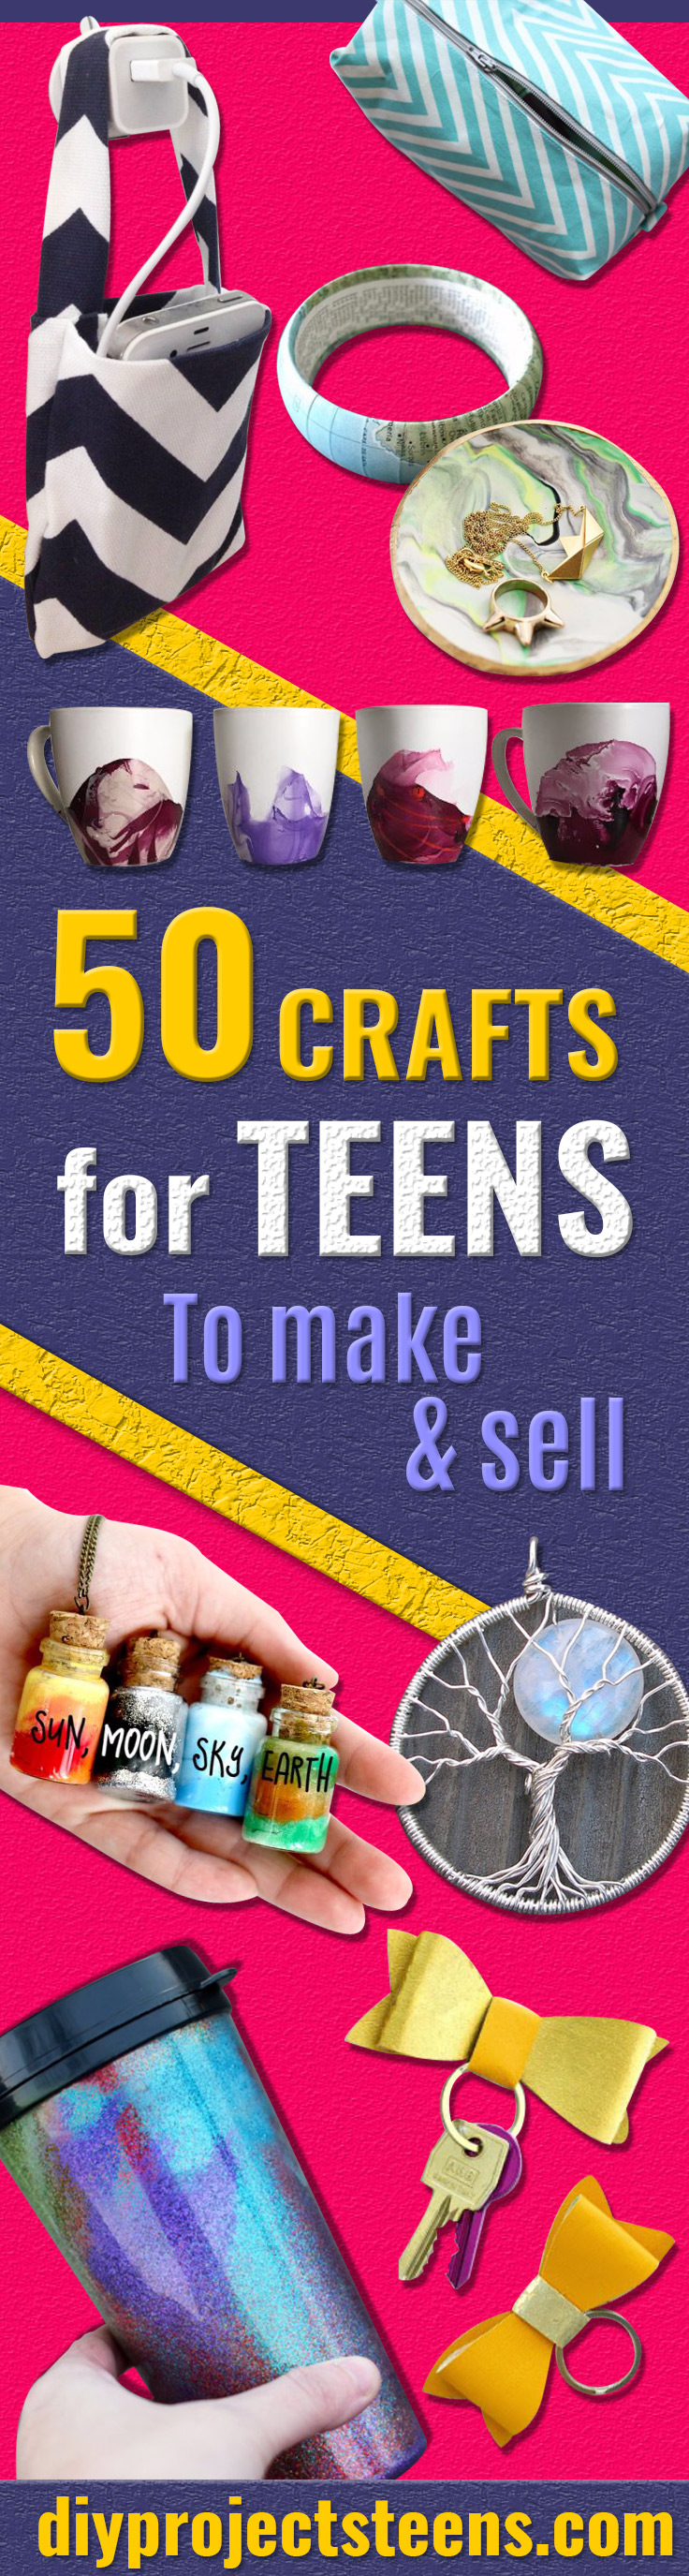 Cool Crafts for Teens to Make and Sell - Creative DIY Projects to Make and Sell - DIY Ideas to Sell for Most Profitable Crafts for Etsy